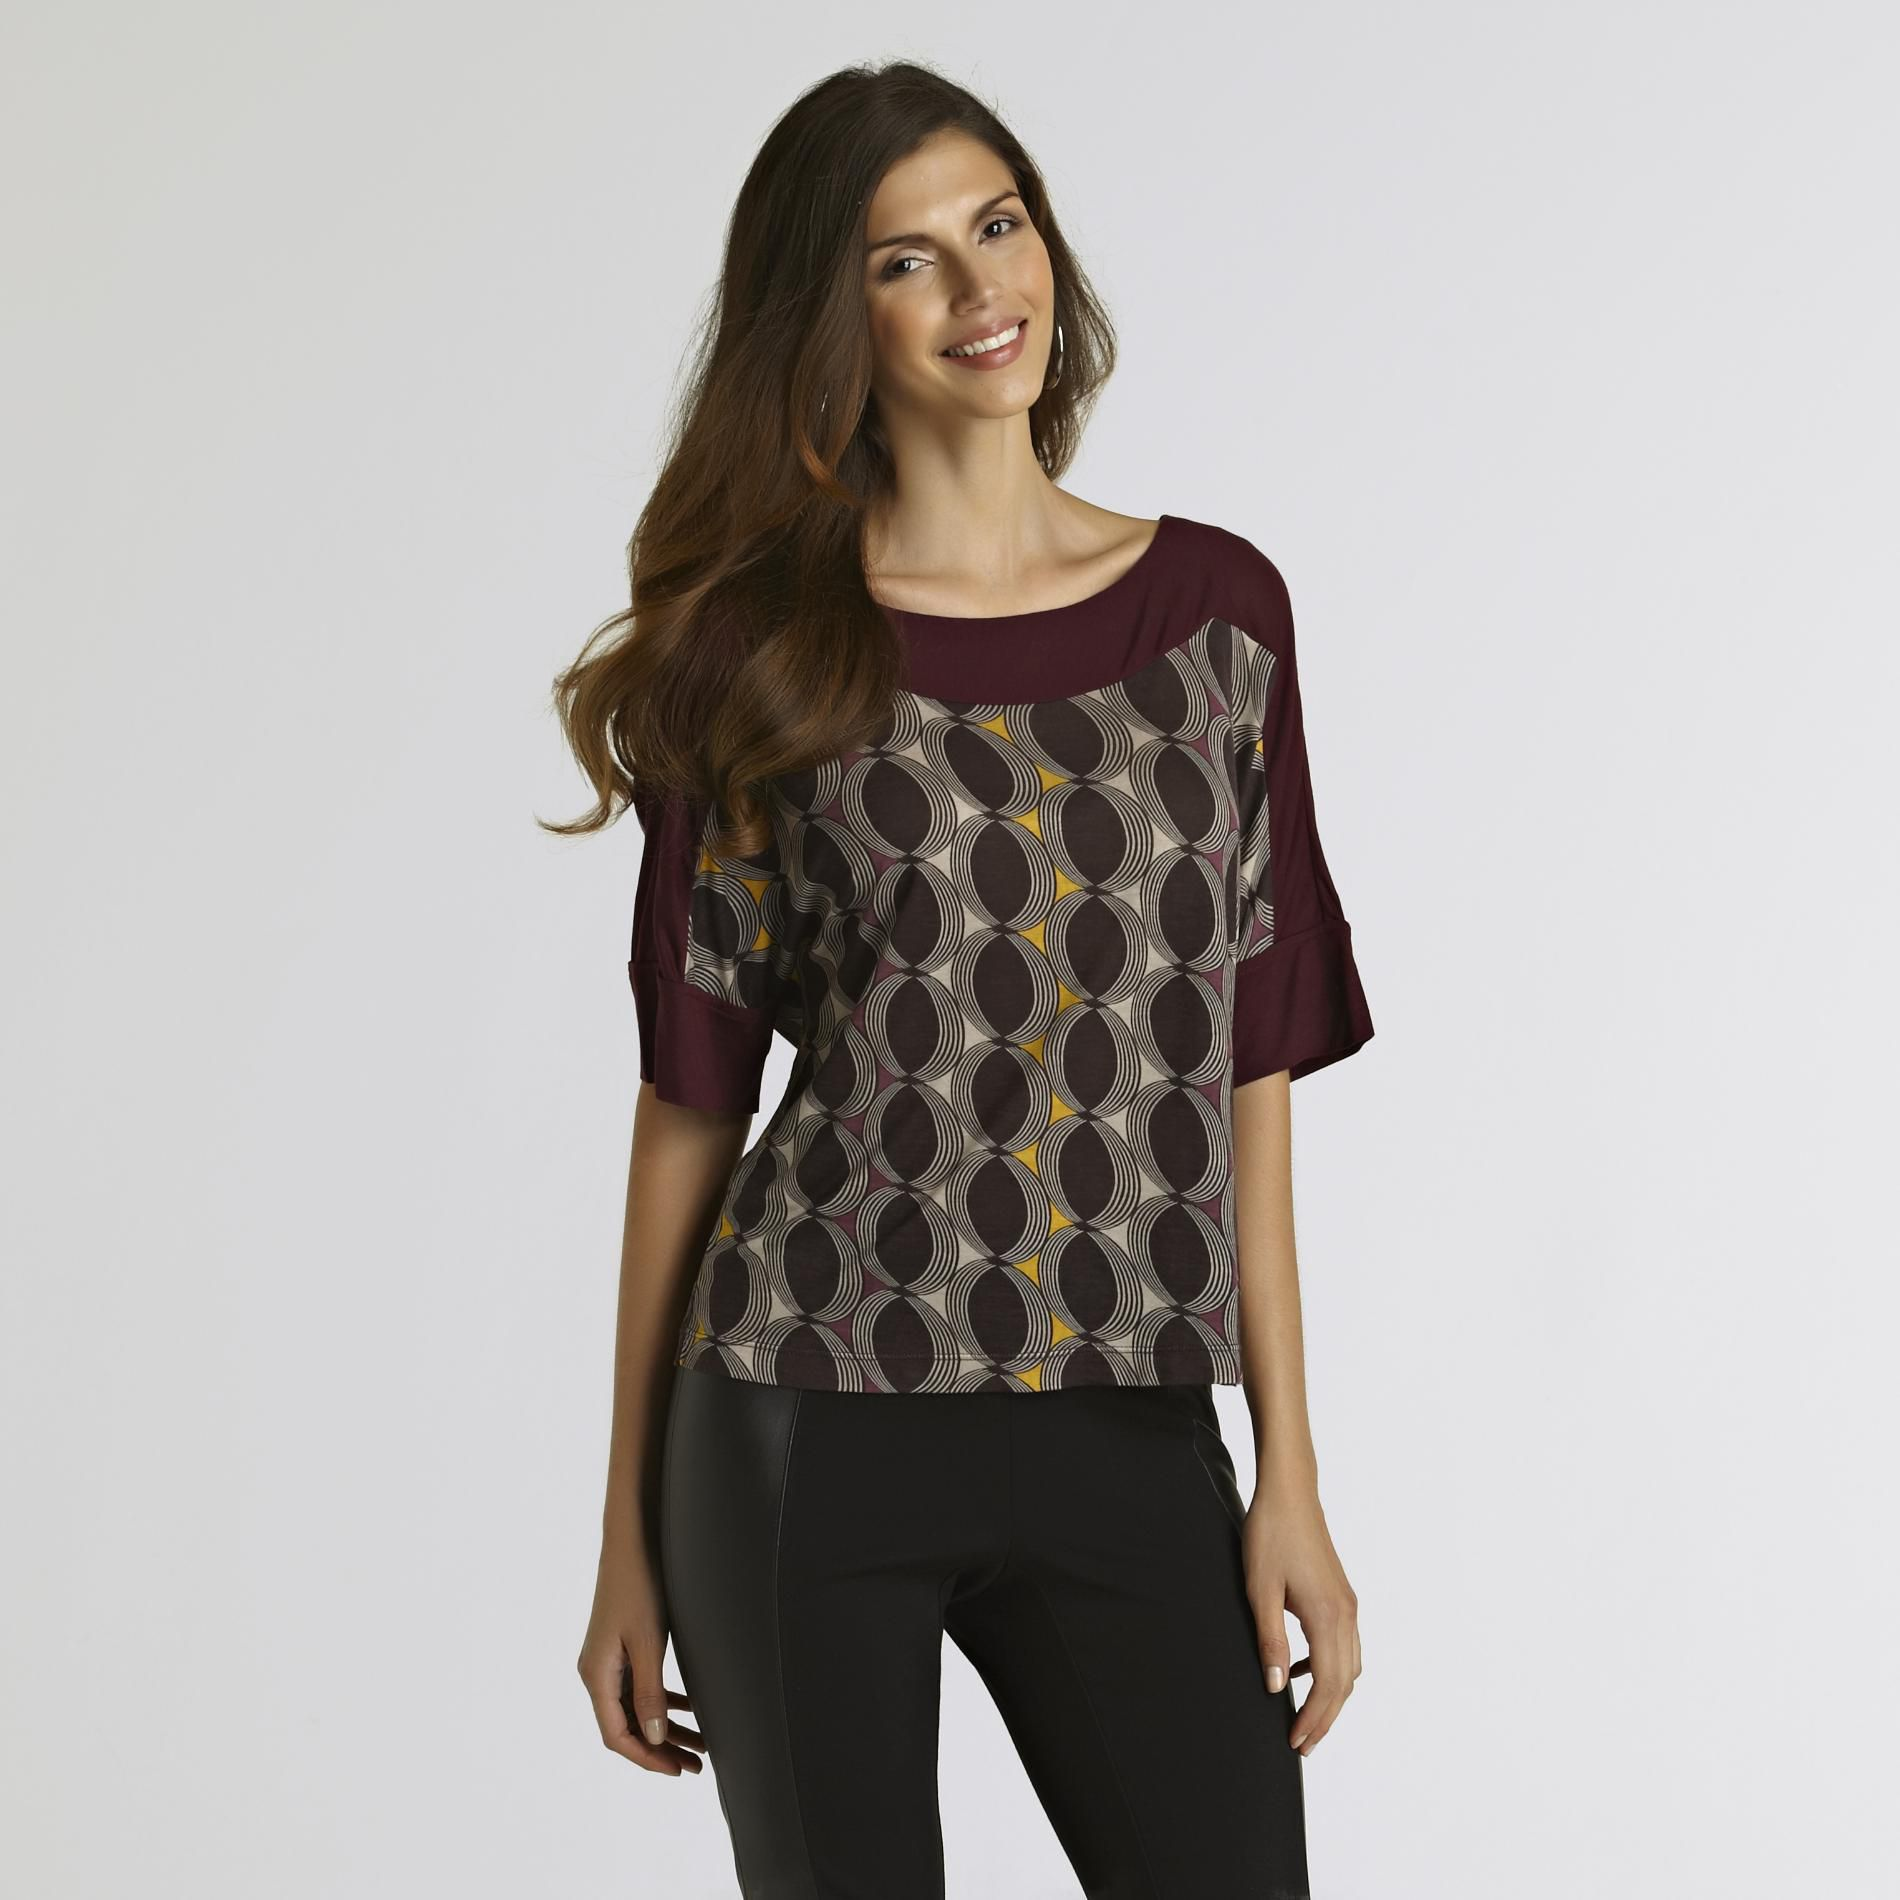 UK Style by French Connection Women s Knit Top Geometric Ovals at Sears.com